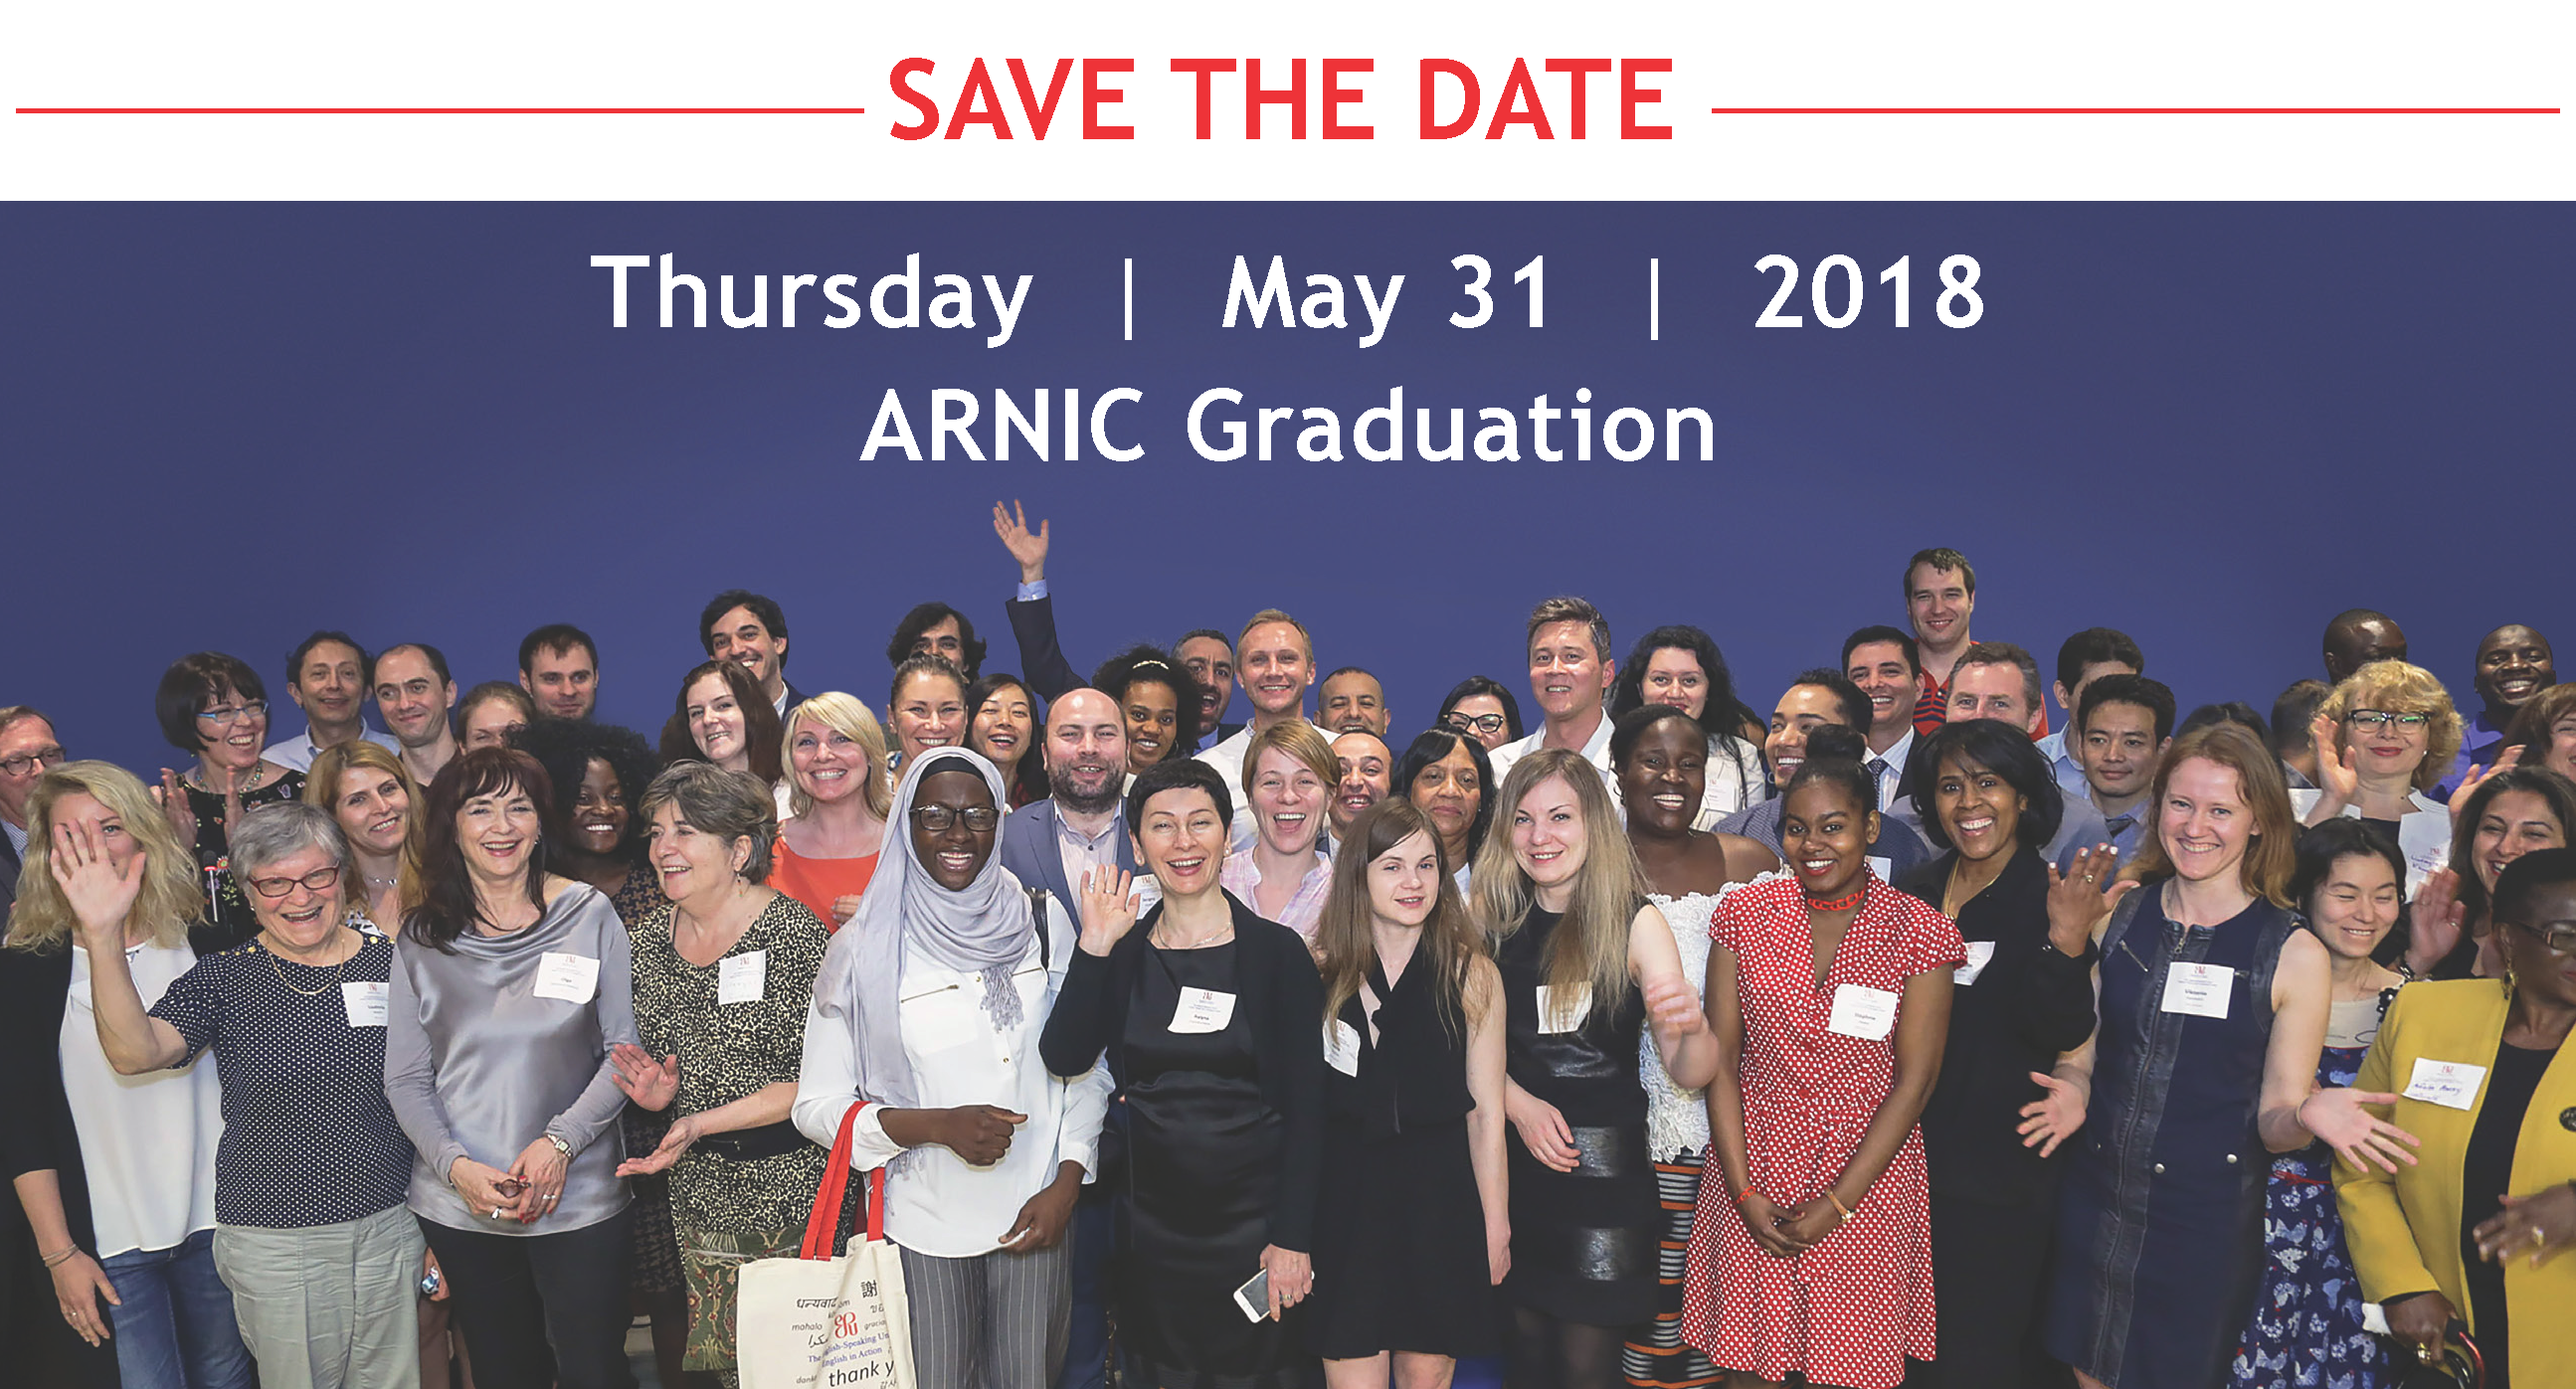 ARNIC Graduation Save the date: May 31, 2018